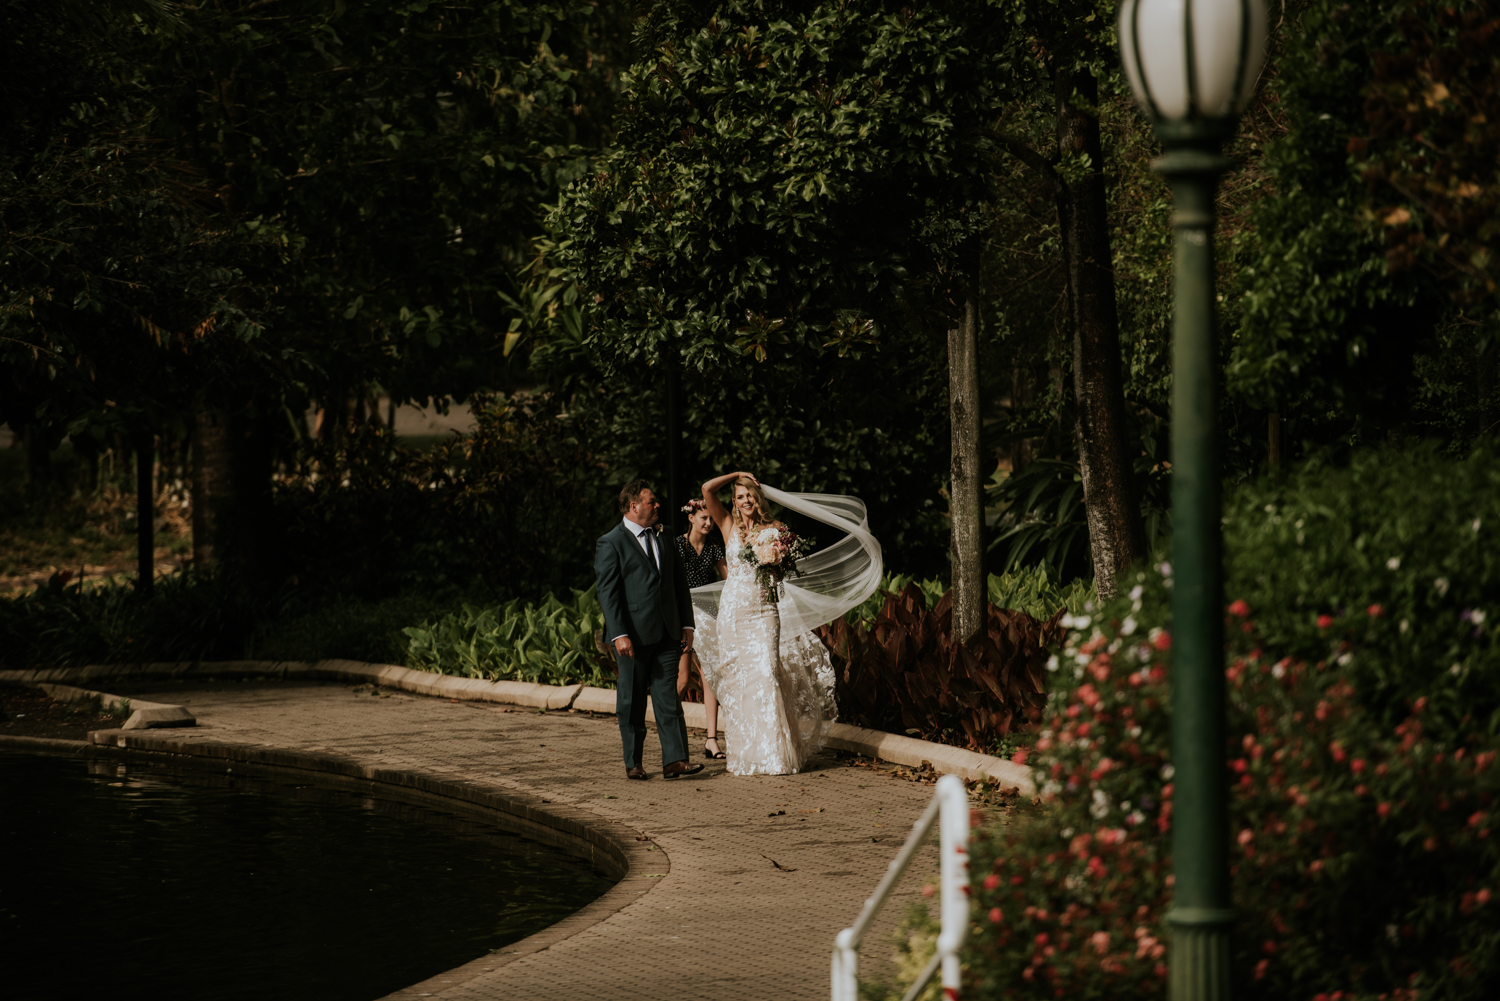 Brisbane Wedding Photographer | Engagement-Elopement Photography | Factory51-City Botantic Gardens Wedding-26.jpg